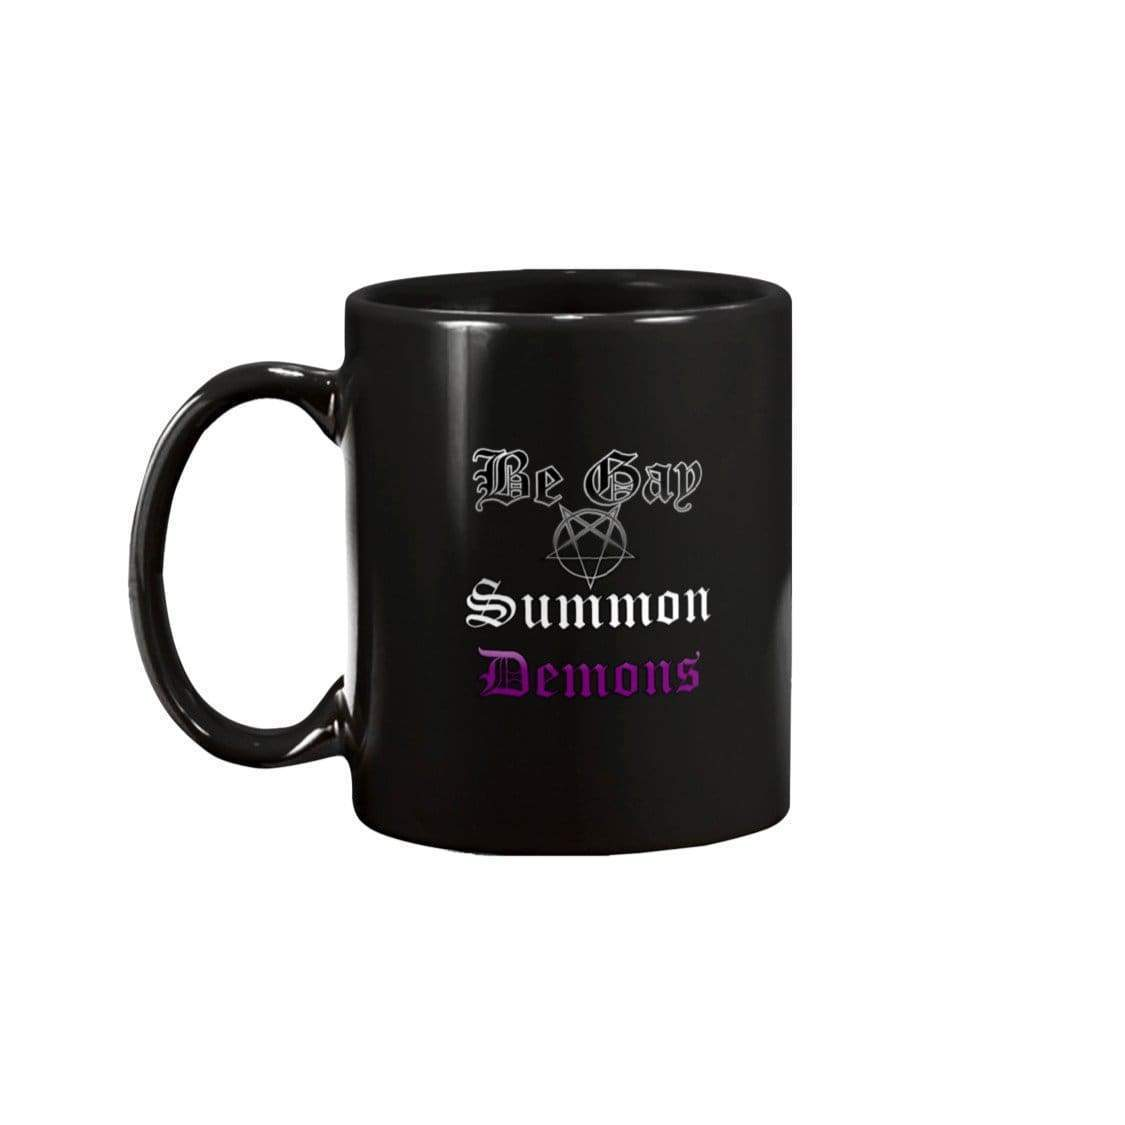 Dice Priori Be Gay Summon Demons Ace 15oz Coffee Mug - Mugs